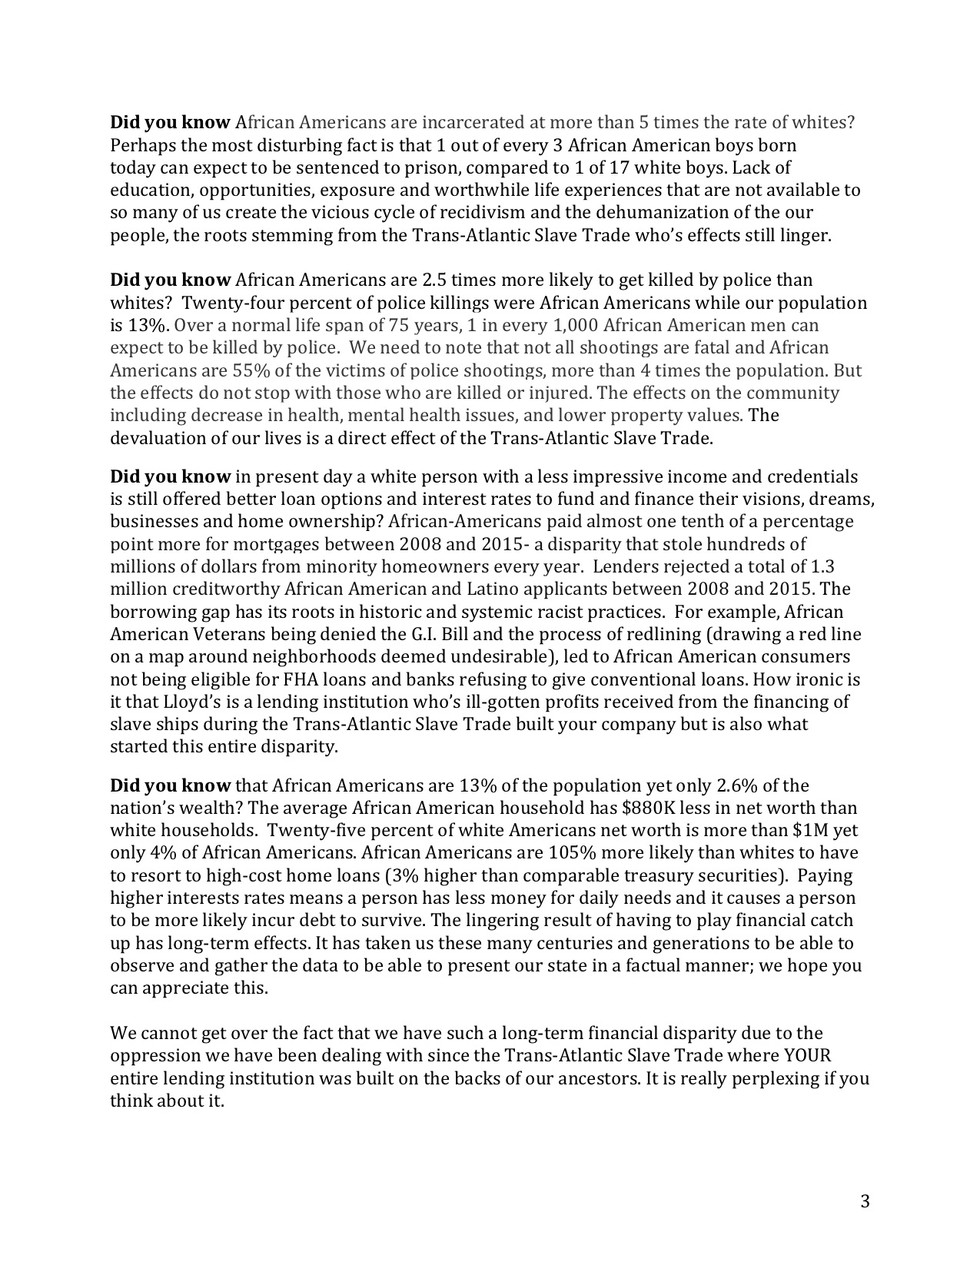 Lloys of London Page 3.jpg